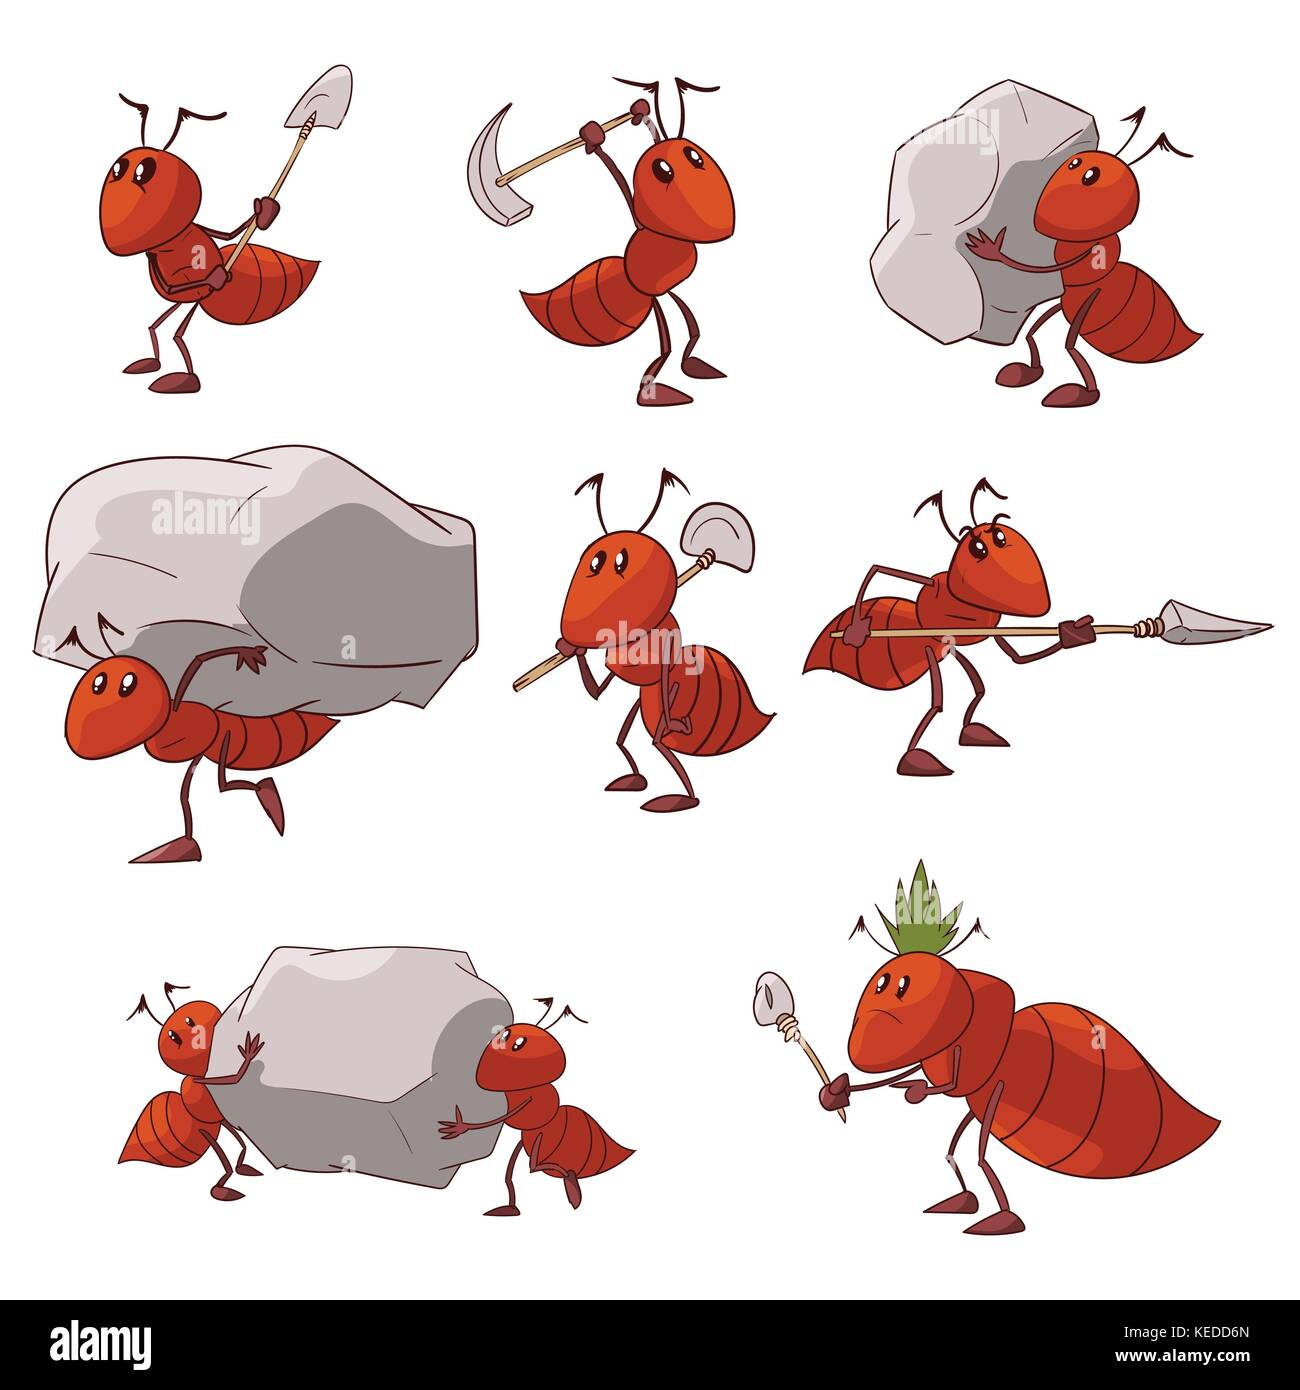 ant labor stock photos u0026 ant labor stock images alamy